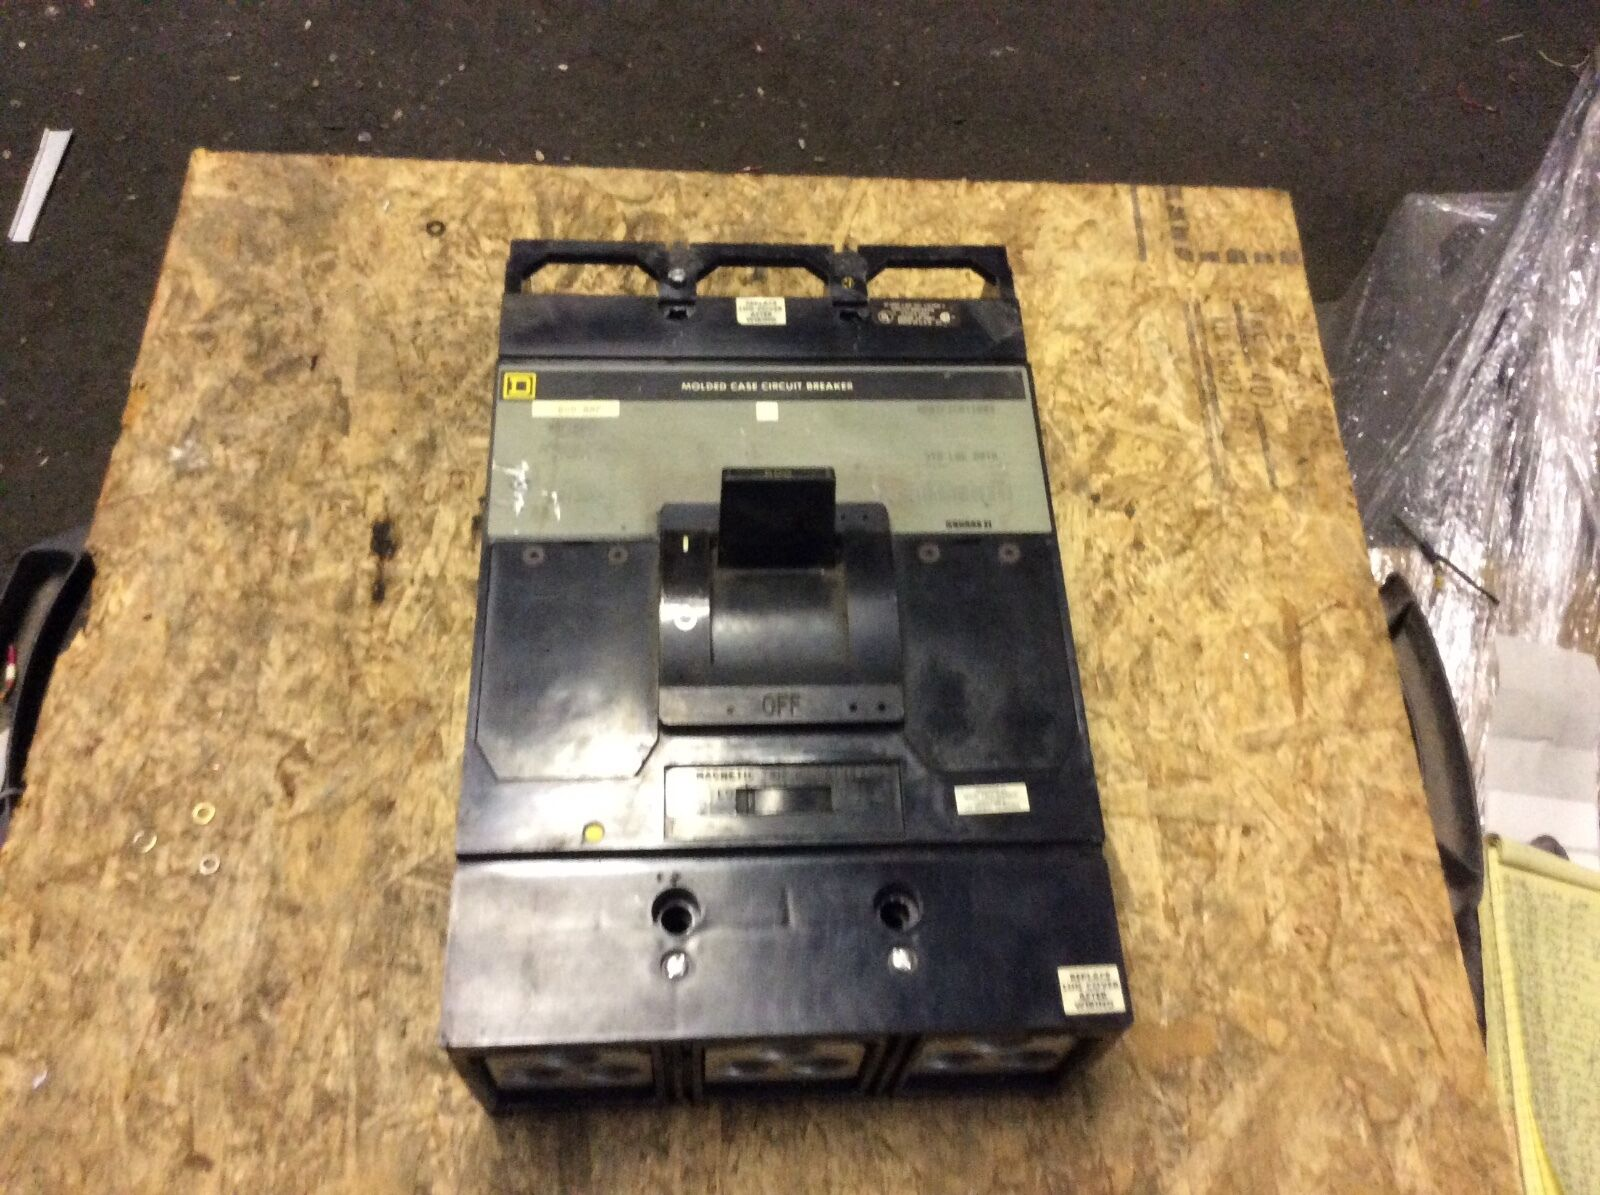 Square-D 600a molded case circuit breaker,  MAP36600, missing covers